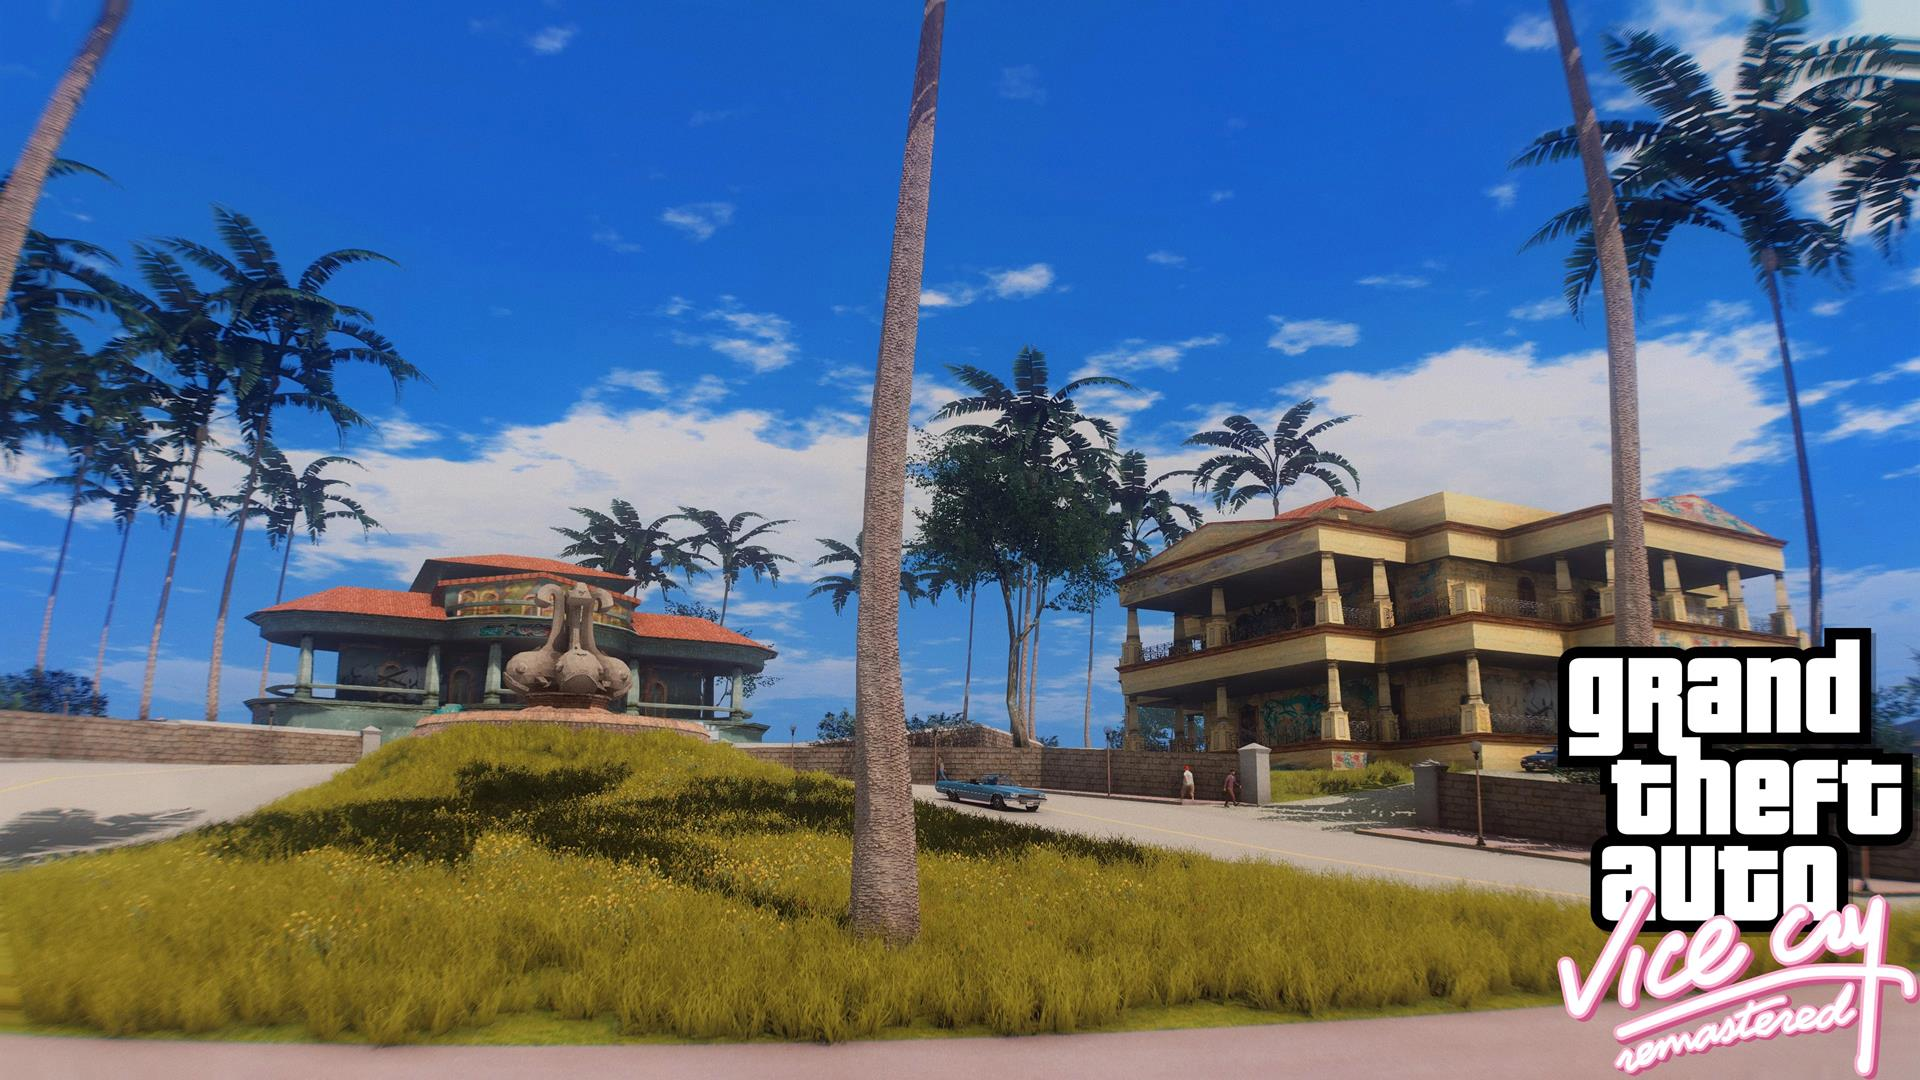 GTA 5 mod ports the entirety of Vice City's map - VG247 Gta Vice City Map on starcraft 1 map, devil may cry 1 map, kingdom hearts 1 map, test drive unlimited 1 map, euro truck simulator 1 map, halo 1 map, mass effect 1 map, grand theft auto 1 map, the sims 1 map, manhunt 1 map, just cause 1 map, doom 1 map, need for speed underground 1 map, bioshock 1 map, prototype 1 map, crash bandicoot 1 map, tomb raider 1 map,